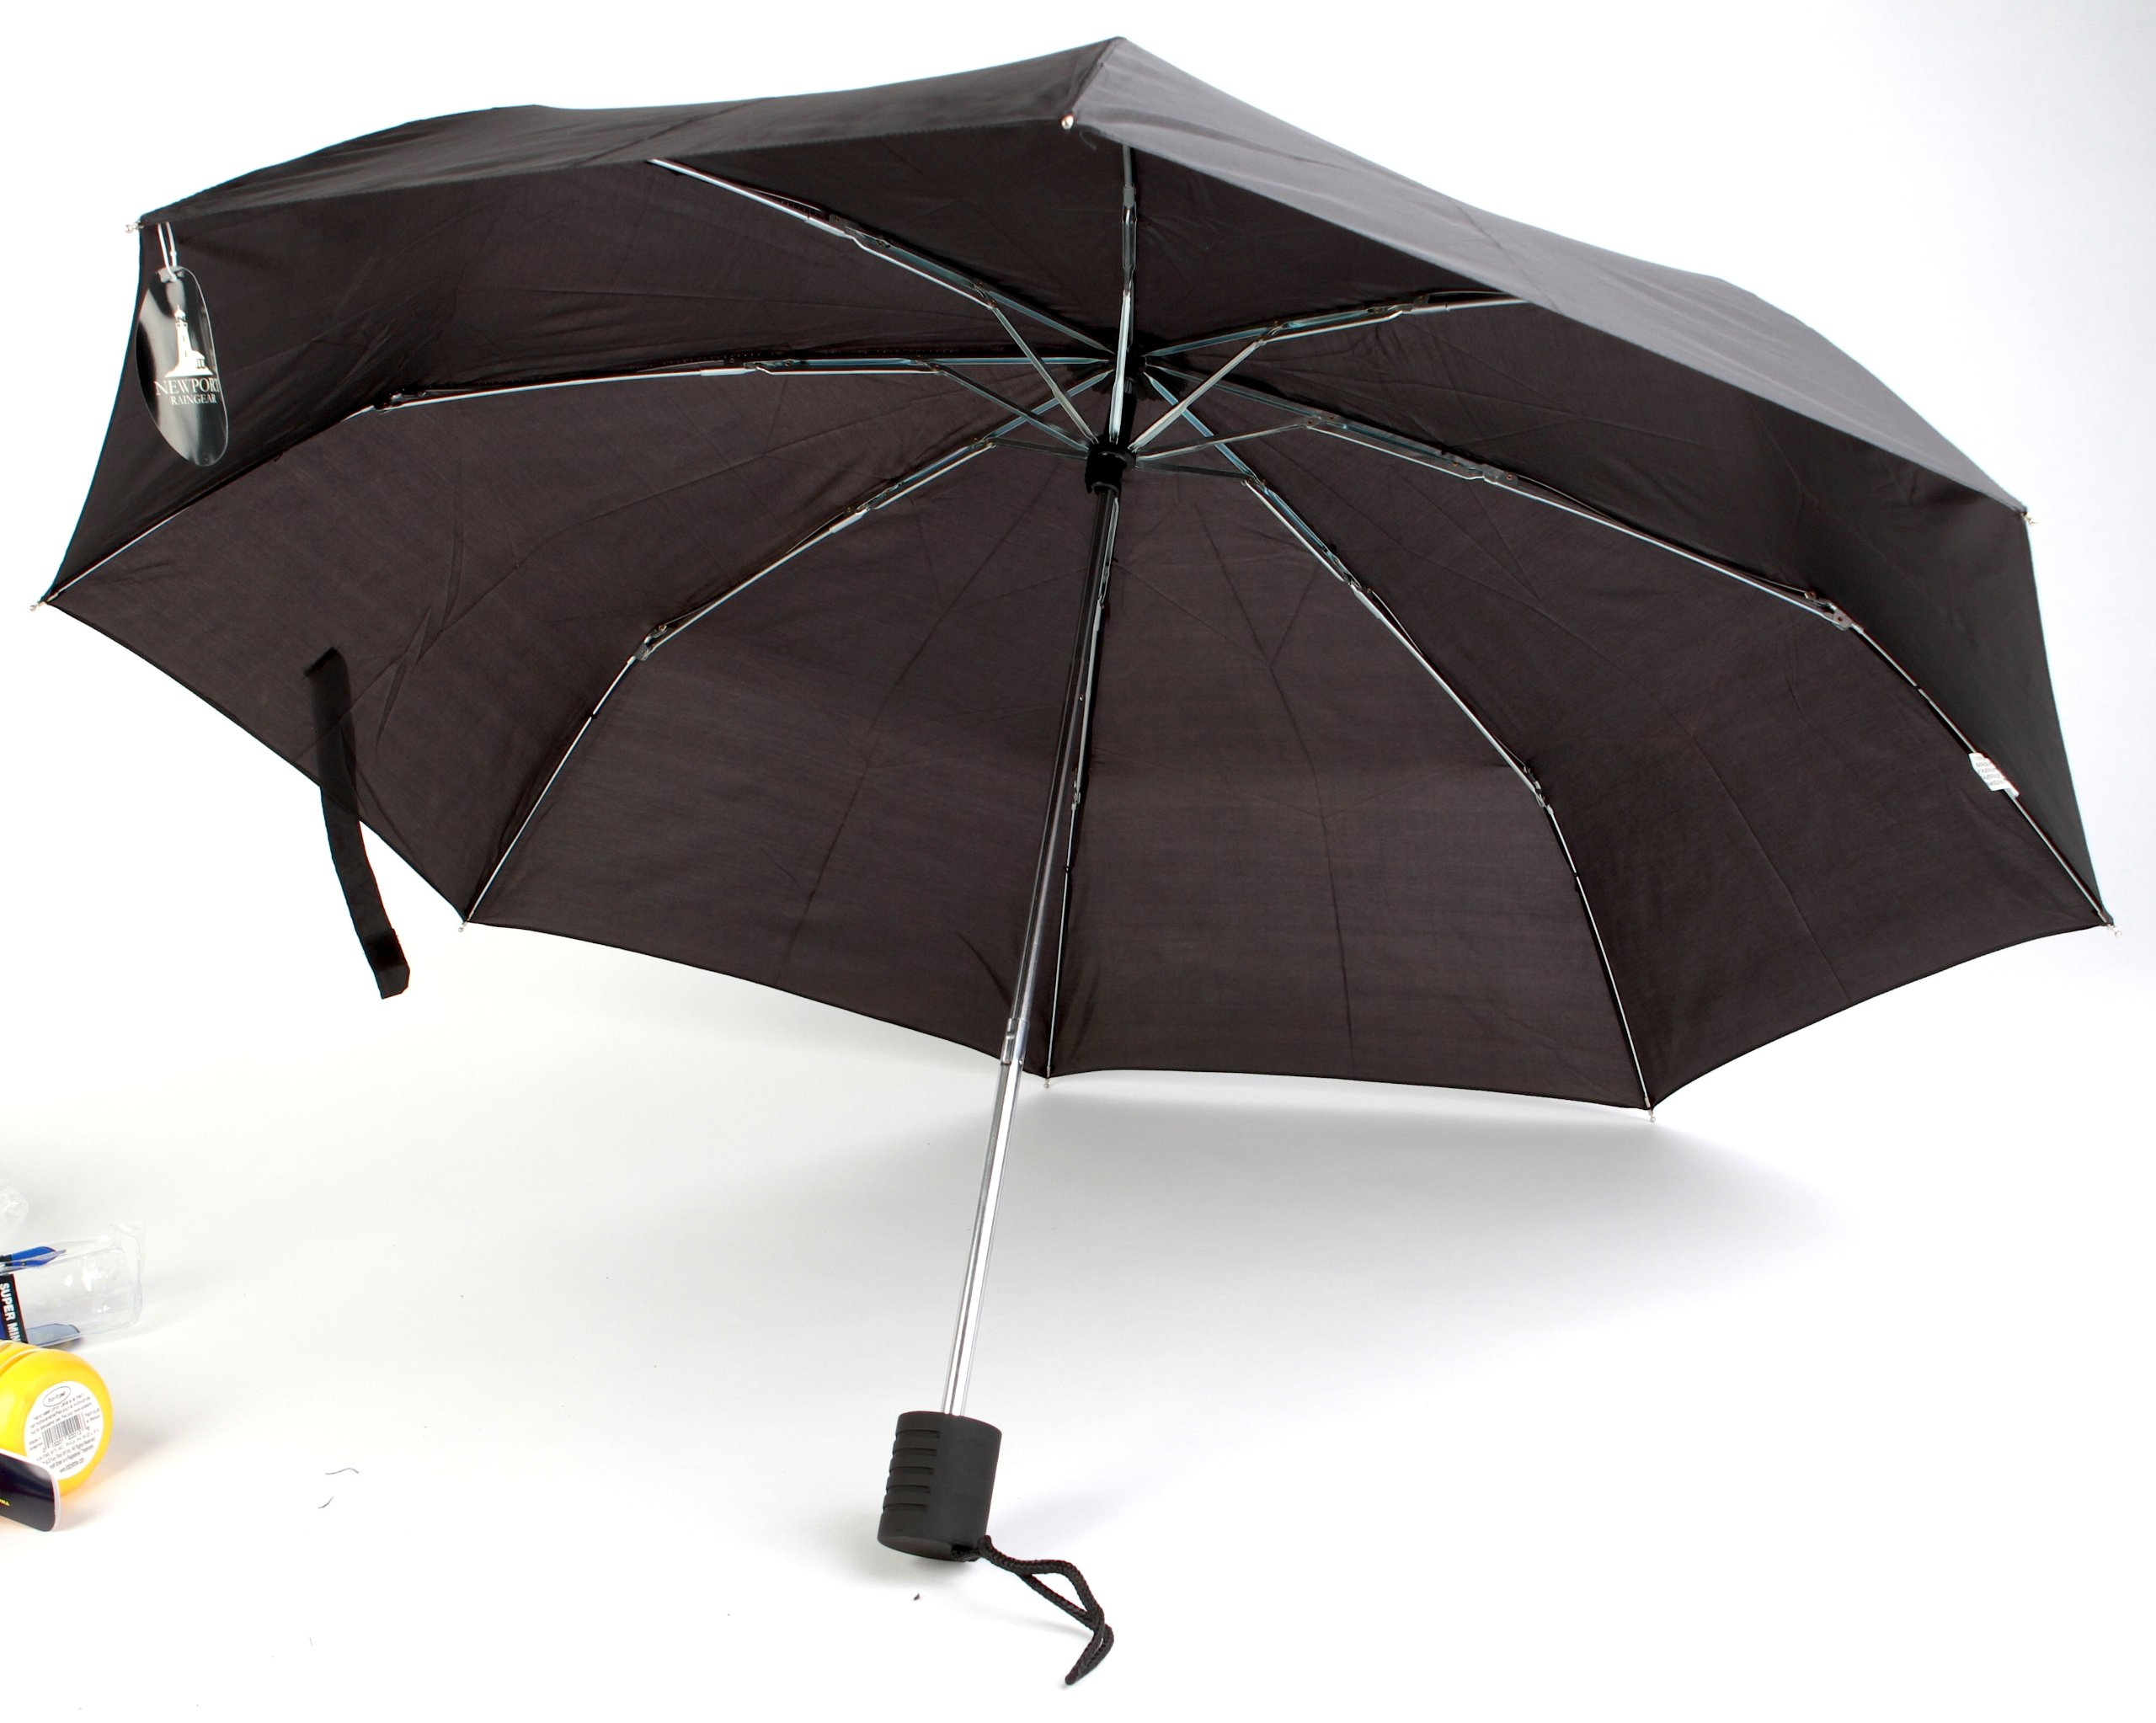 The Weather Station 42-Inch Auto Open Compact Folding Umbrella, Black - Pack of 24